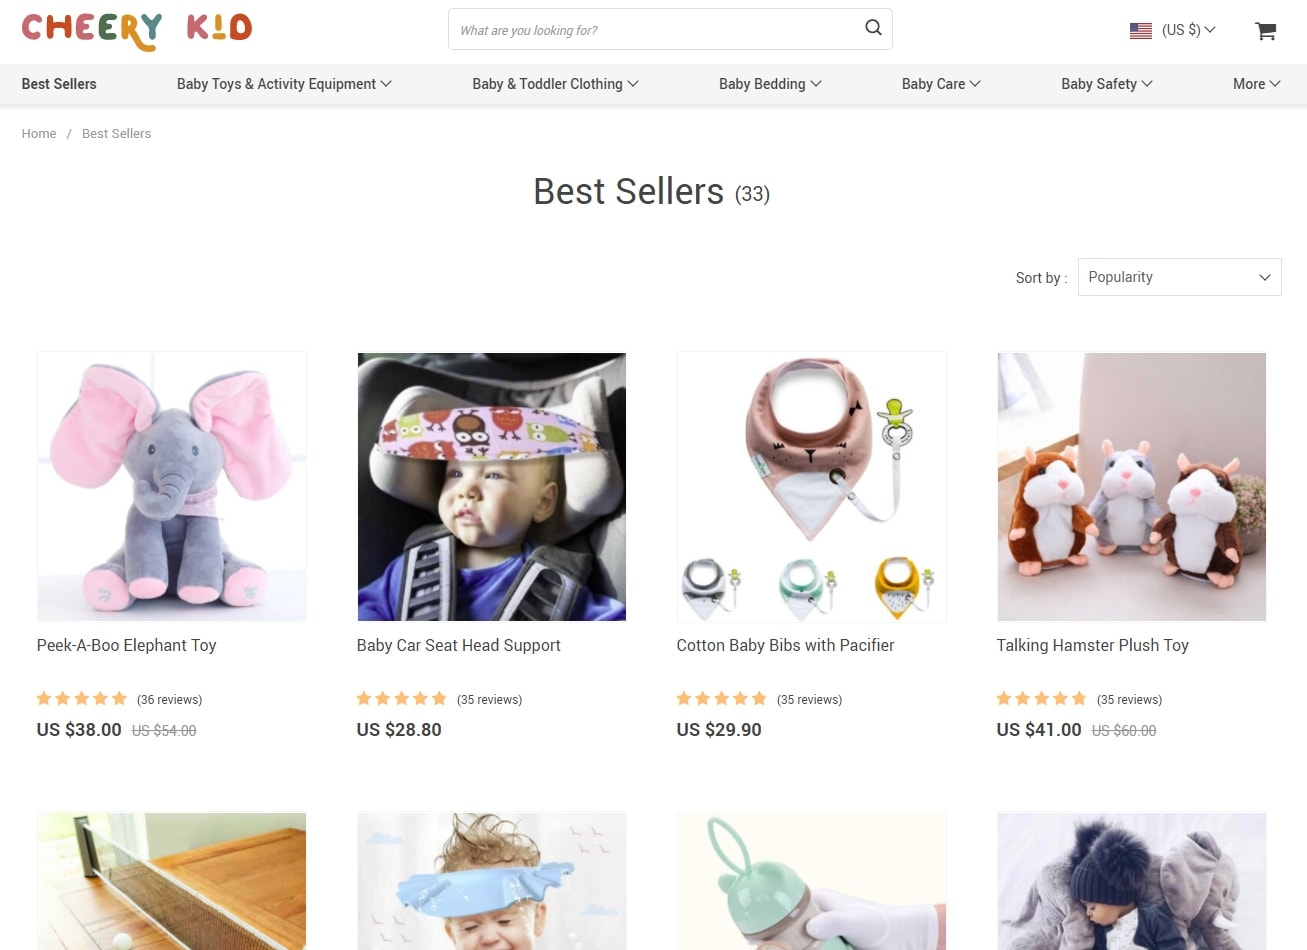 Cheery Kid's Best Sellers category containing the top child products